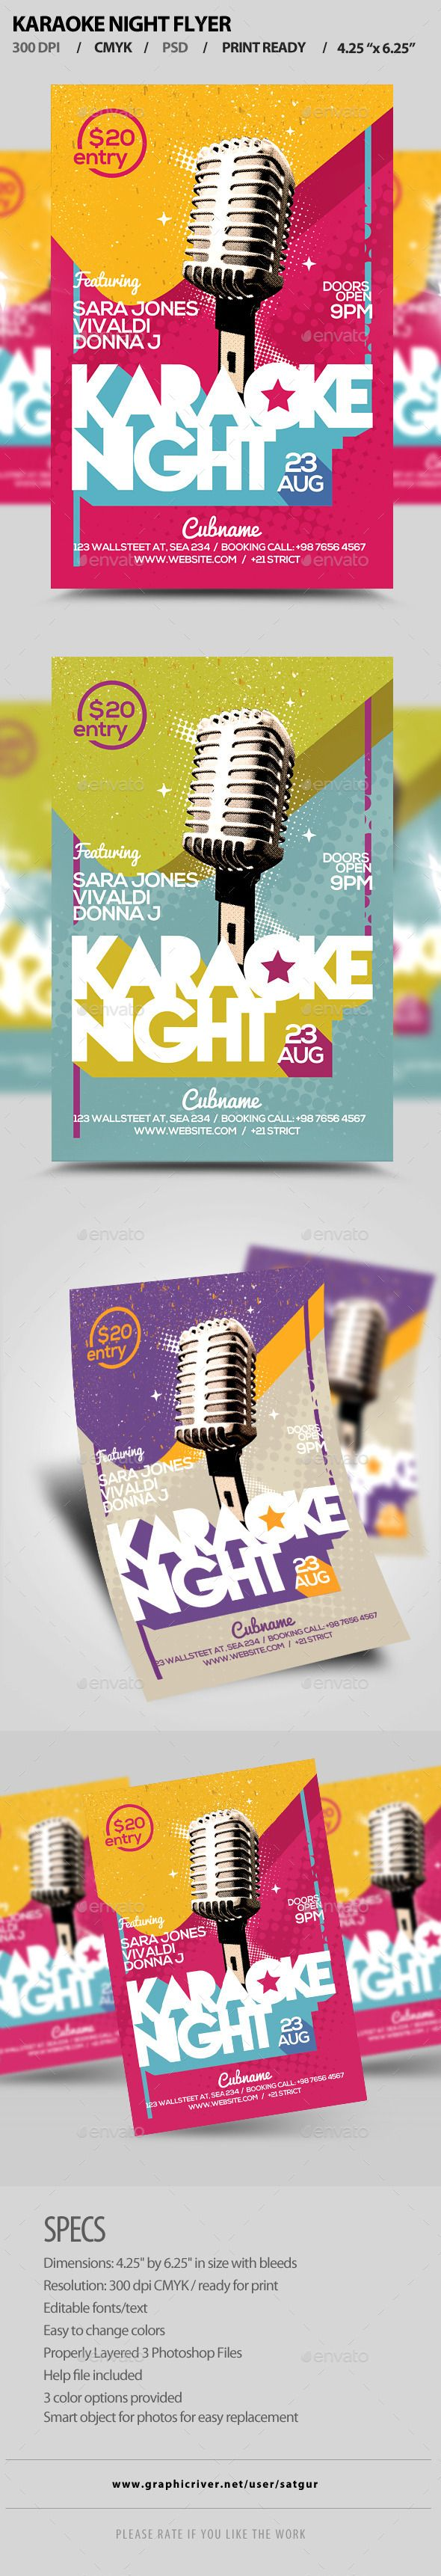 Karaoke Night Flyer V  Karaoke Photoshop And Flyer Design Templates